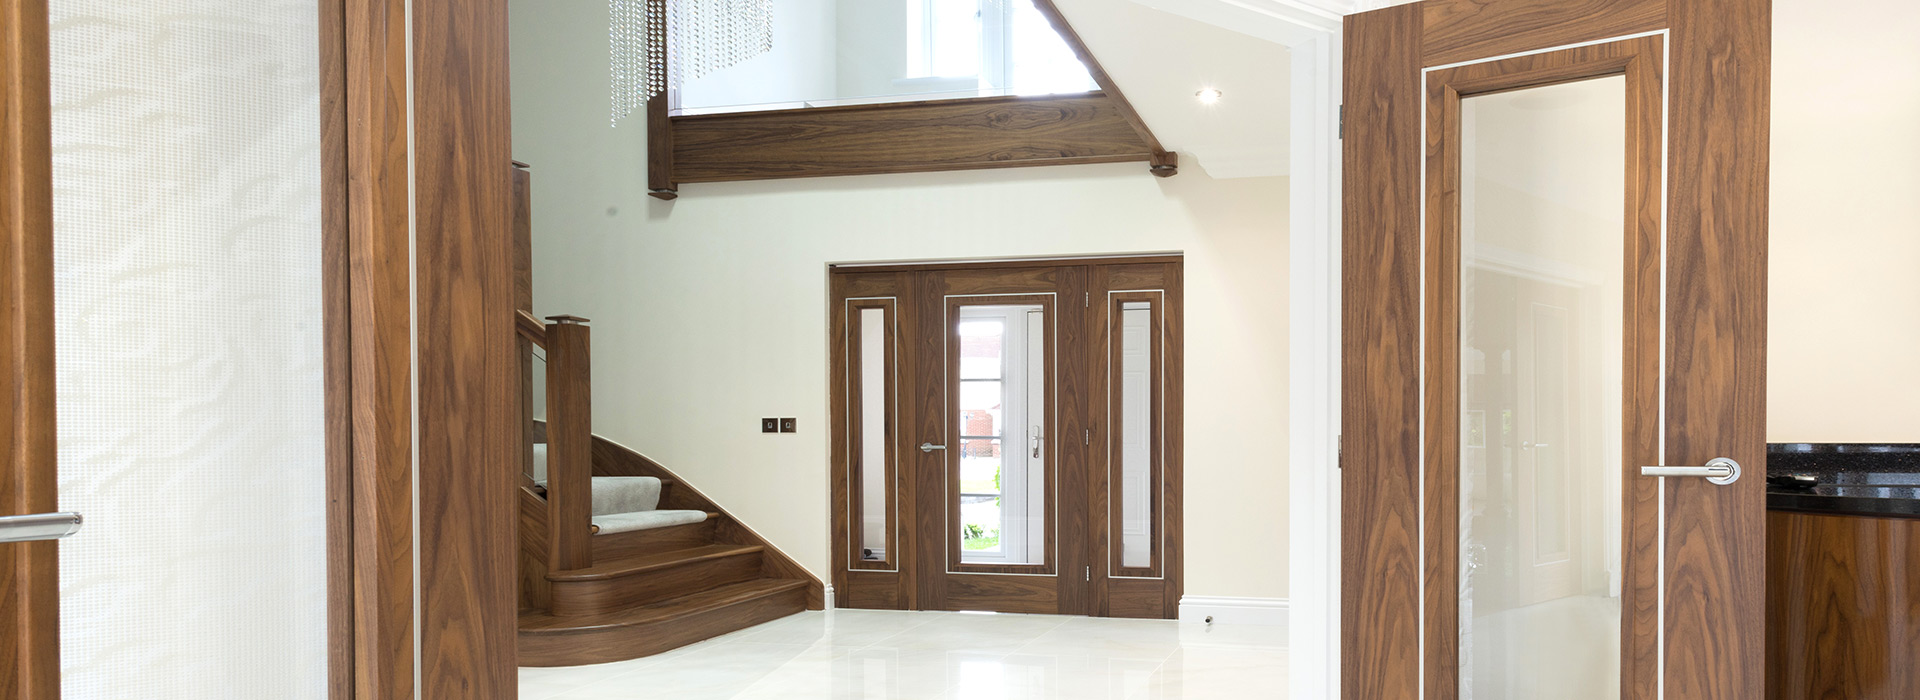 Tiled hallway with Walnut stairs